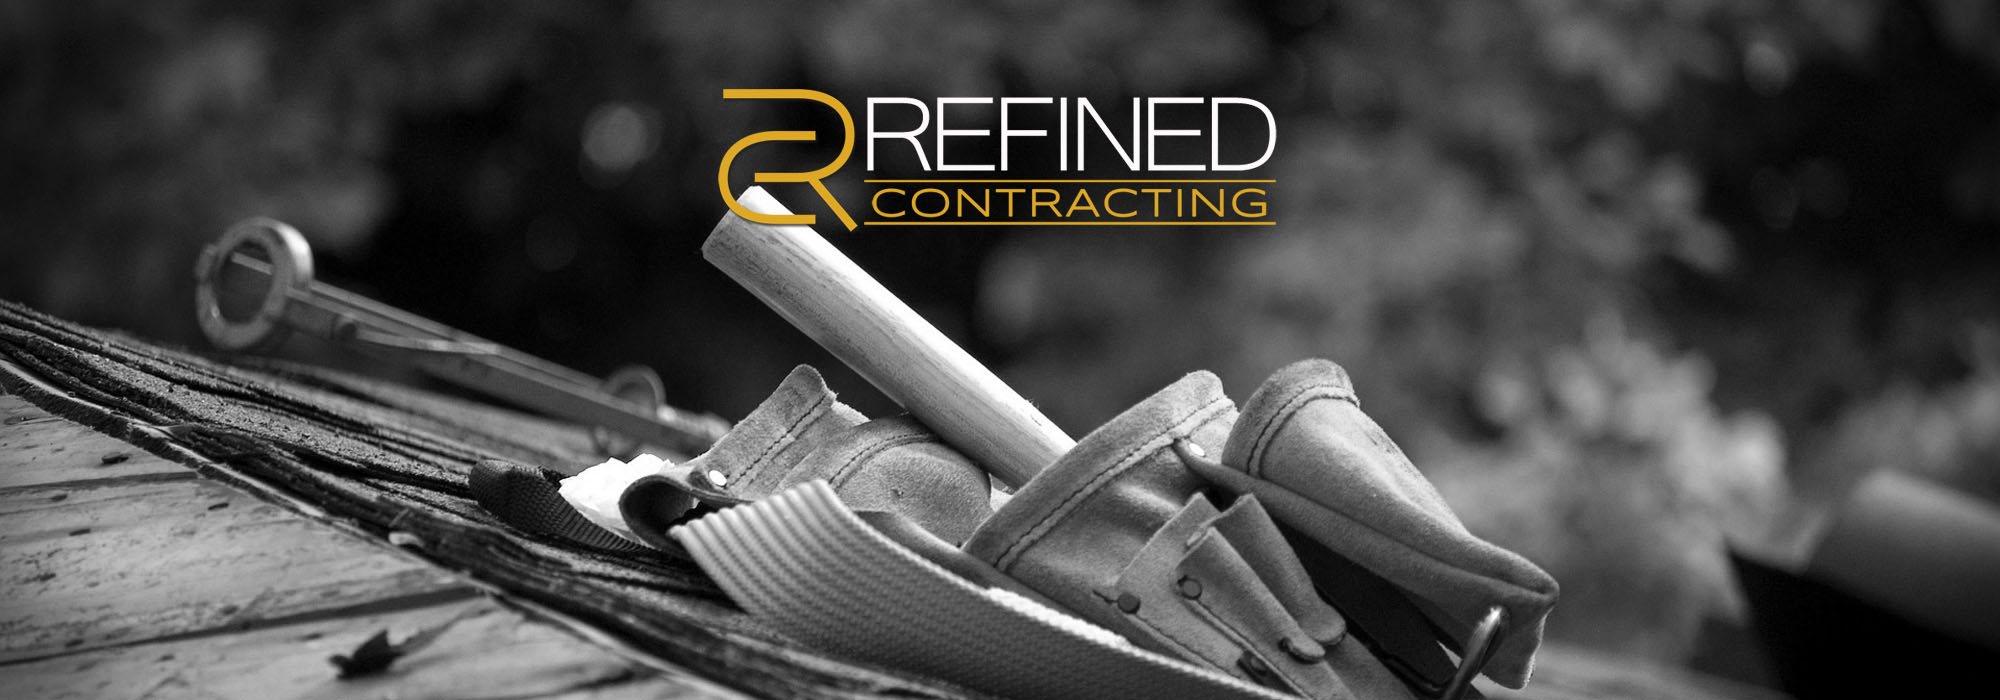 Refined Construction is an expert in quality roofing repair and replacement on homes in the Denver, CO  and Minneapolis/St. Paul, MN areas